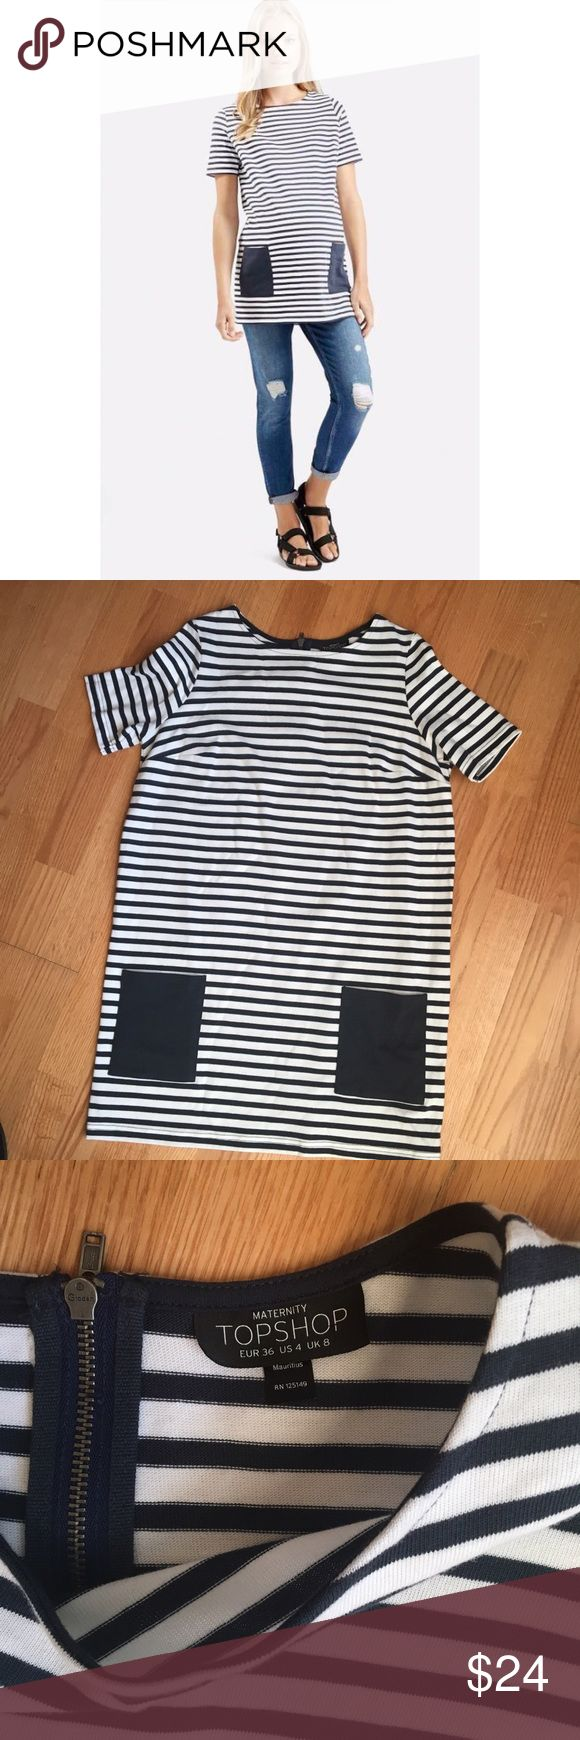 "- Topshop - Stripe Maternity Tunic short sleeve Front patch pockets, back zip closure, 100% cotton, length 31"" bust 20"" Topshop Tops"